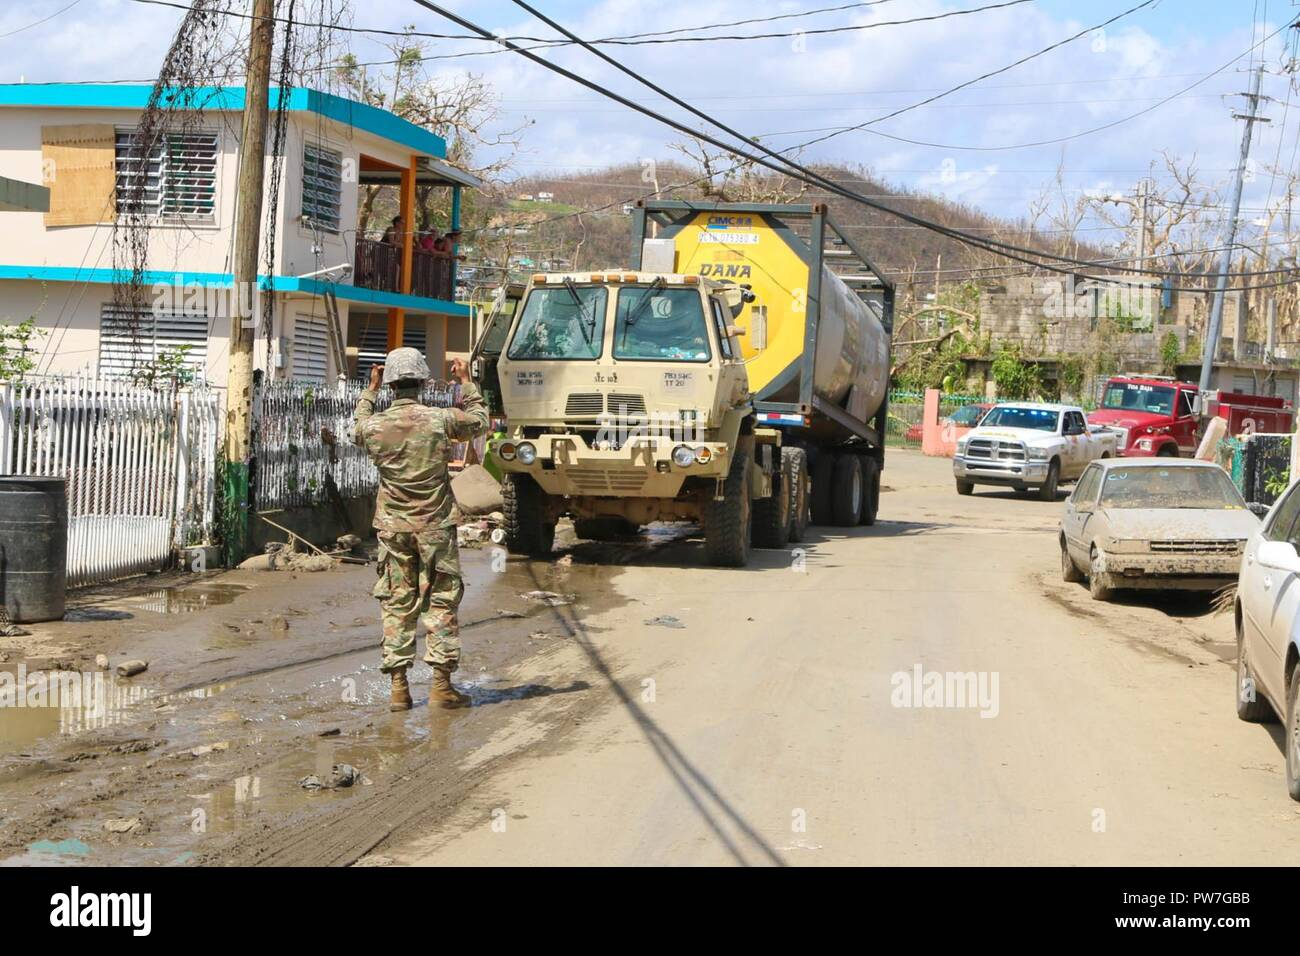 Puerto Rico National Guard Citizen – Soldiers stationed at 783rd Maint. Co. in Toa Baja, PR continue supporting this city after Hurricane María, this time transporting more than 6000 gallons of water to the San José community, Sept. 24. - Stock Image